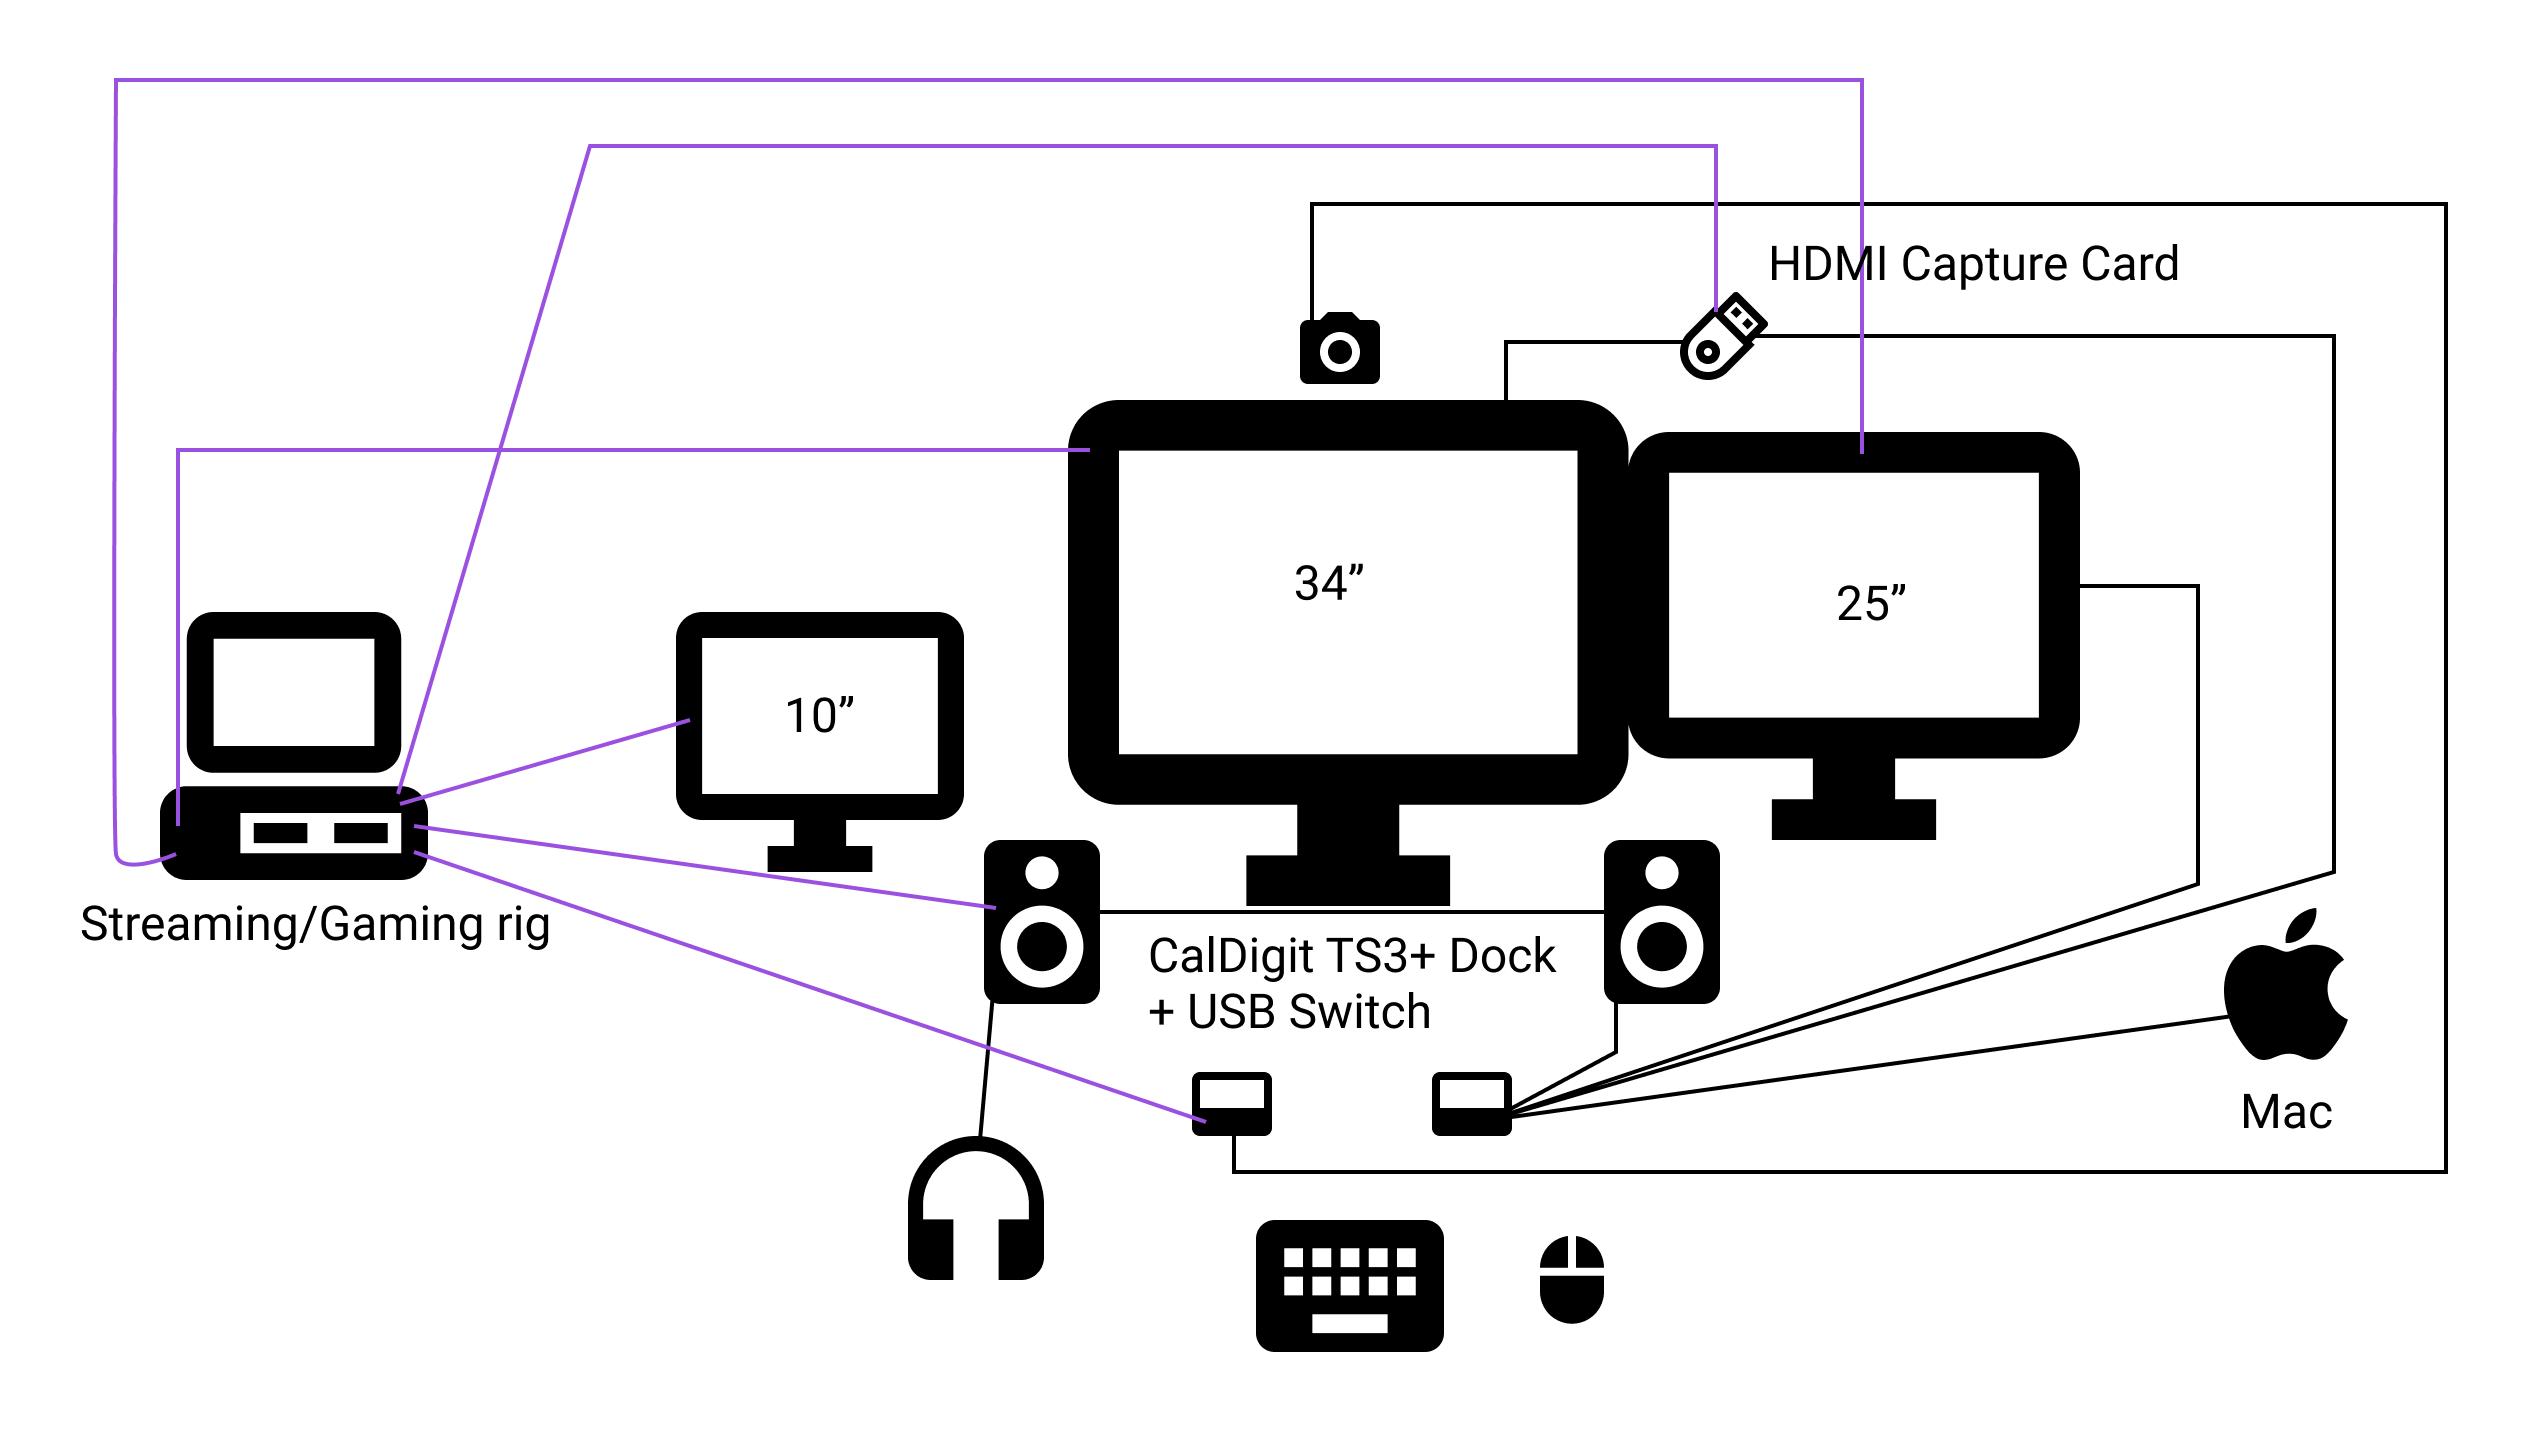 A diagram of how it all looks put together